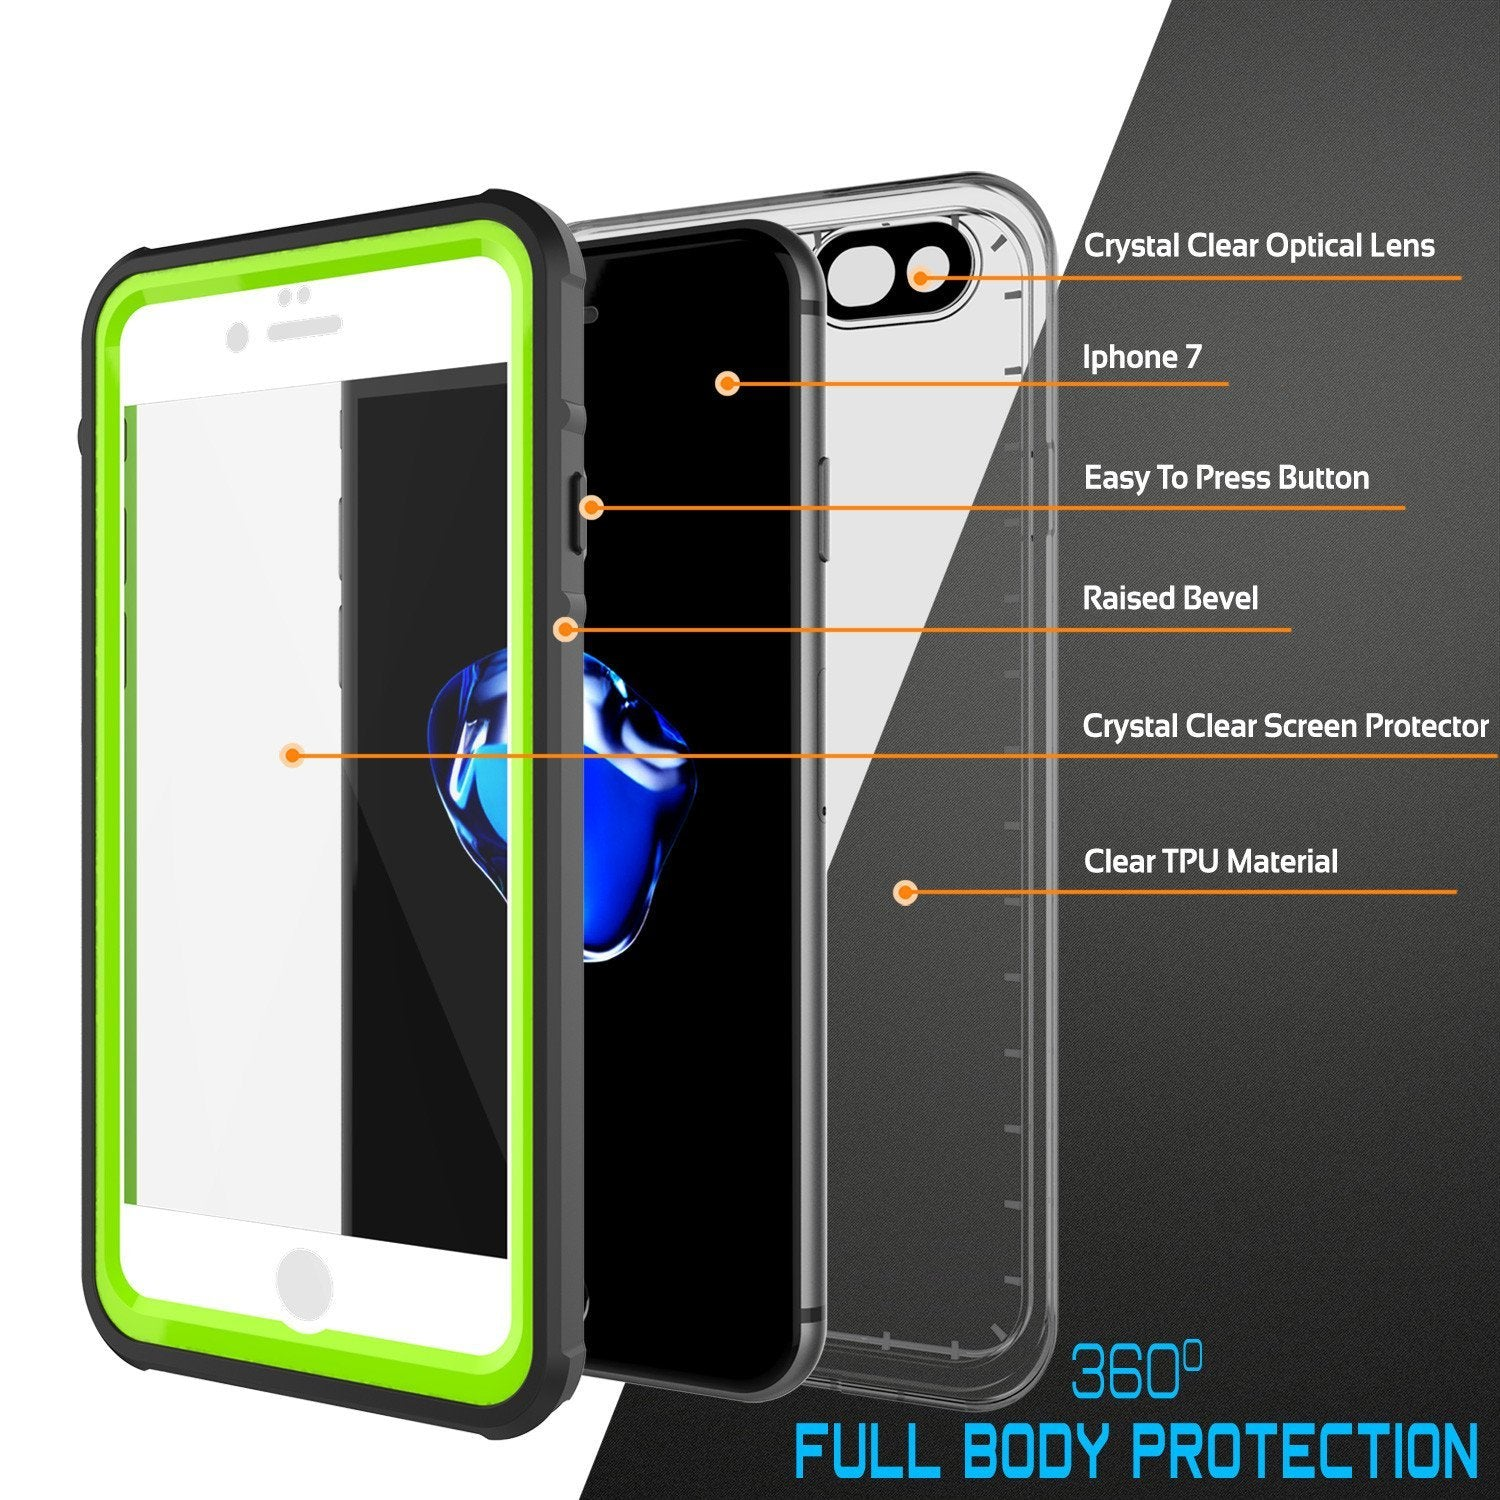 Apple iPhone 8 Waterproof Case, PUNKcase CRYSTAL Light Green  W/ Attached Screen Protector  | Warranty - PunkCase NZ